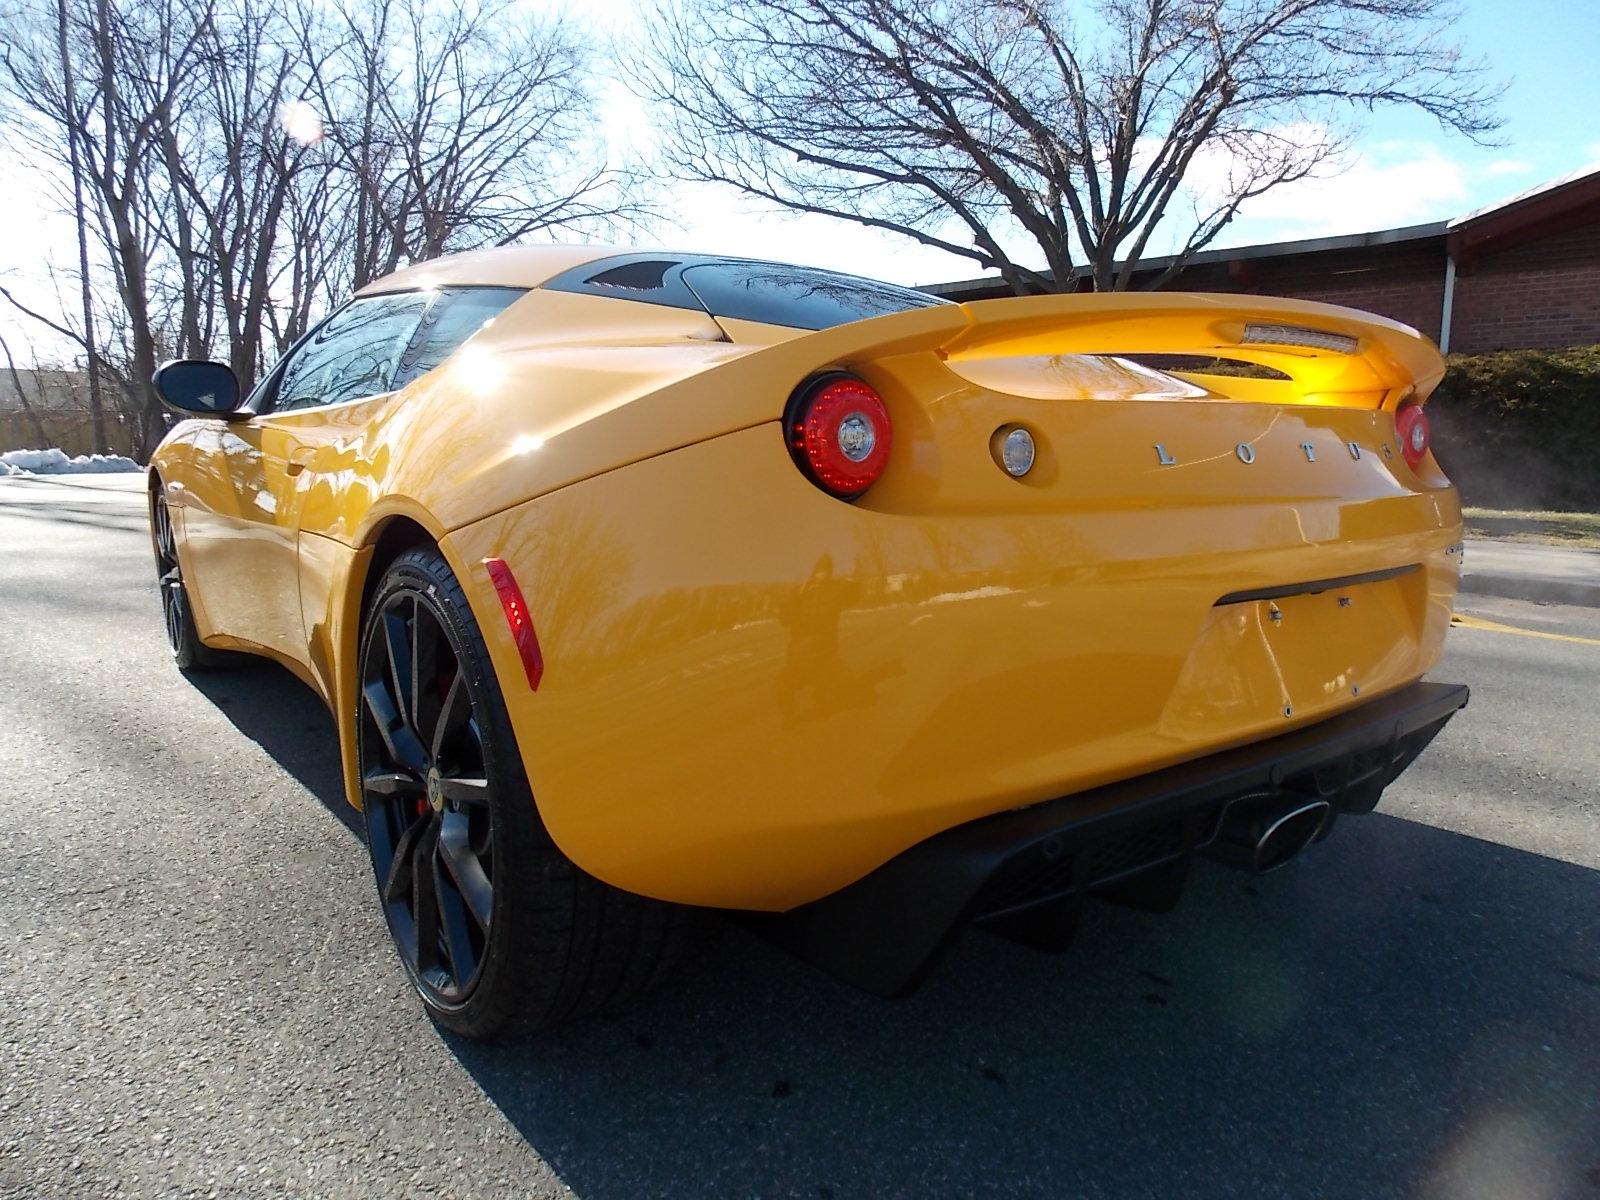 Lotus 2013 Evora - as bright as a life #6